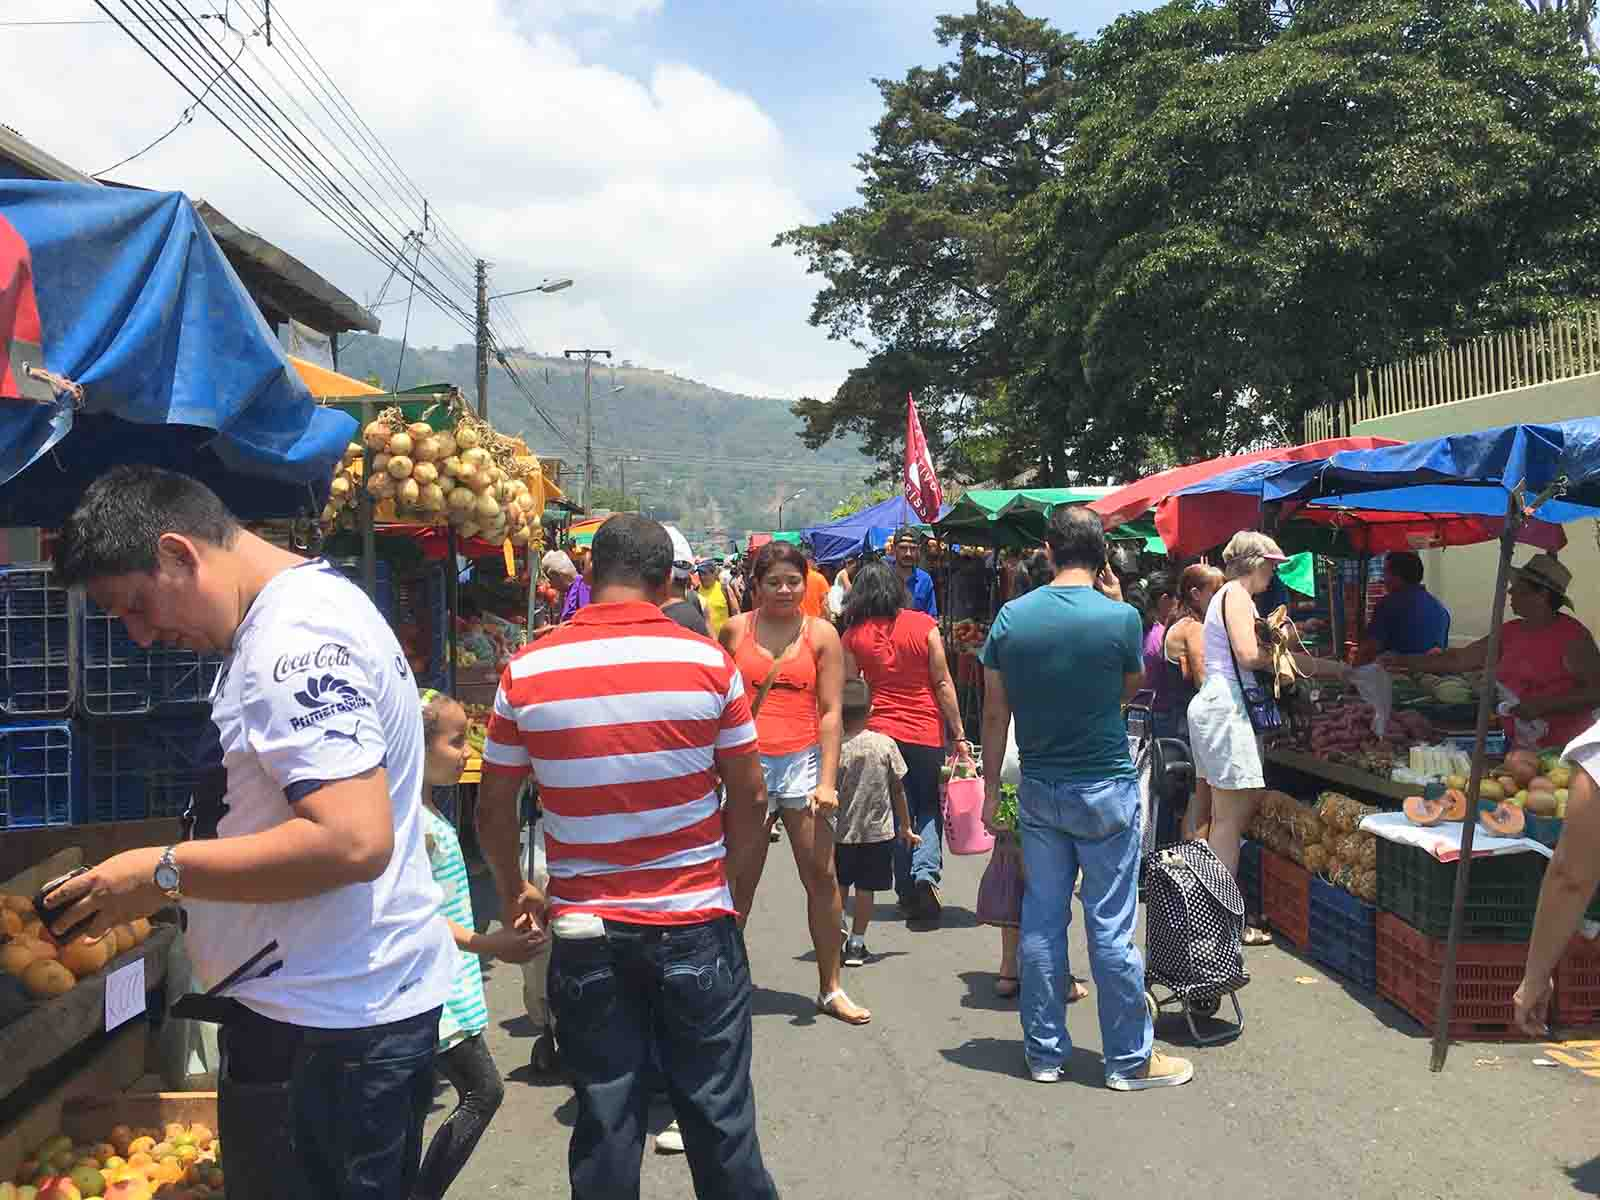 The feria, farmer's market, in Escazu, Costa Rica.